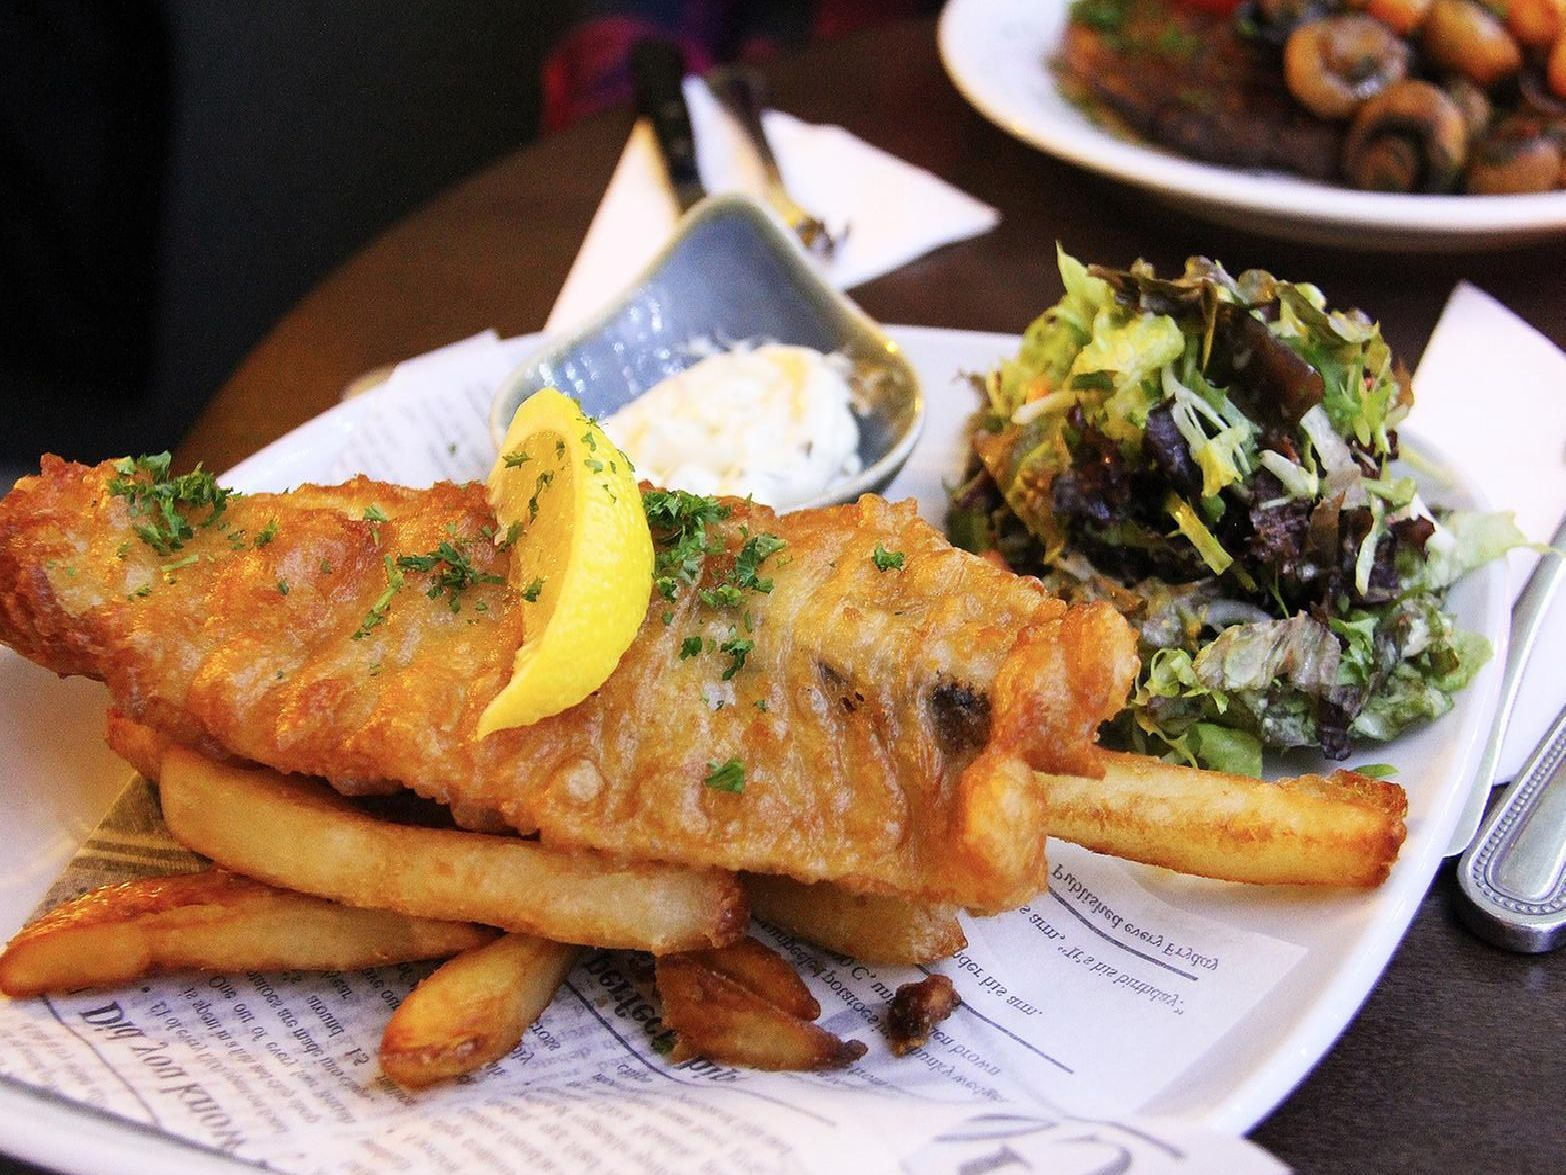 Fish and chips. Picture by Pixabay